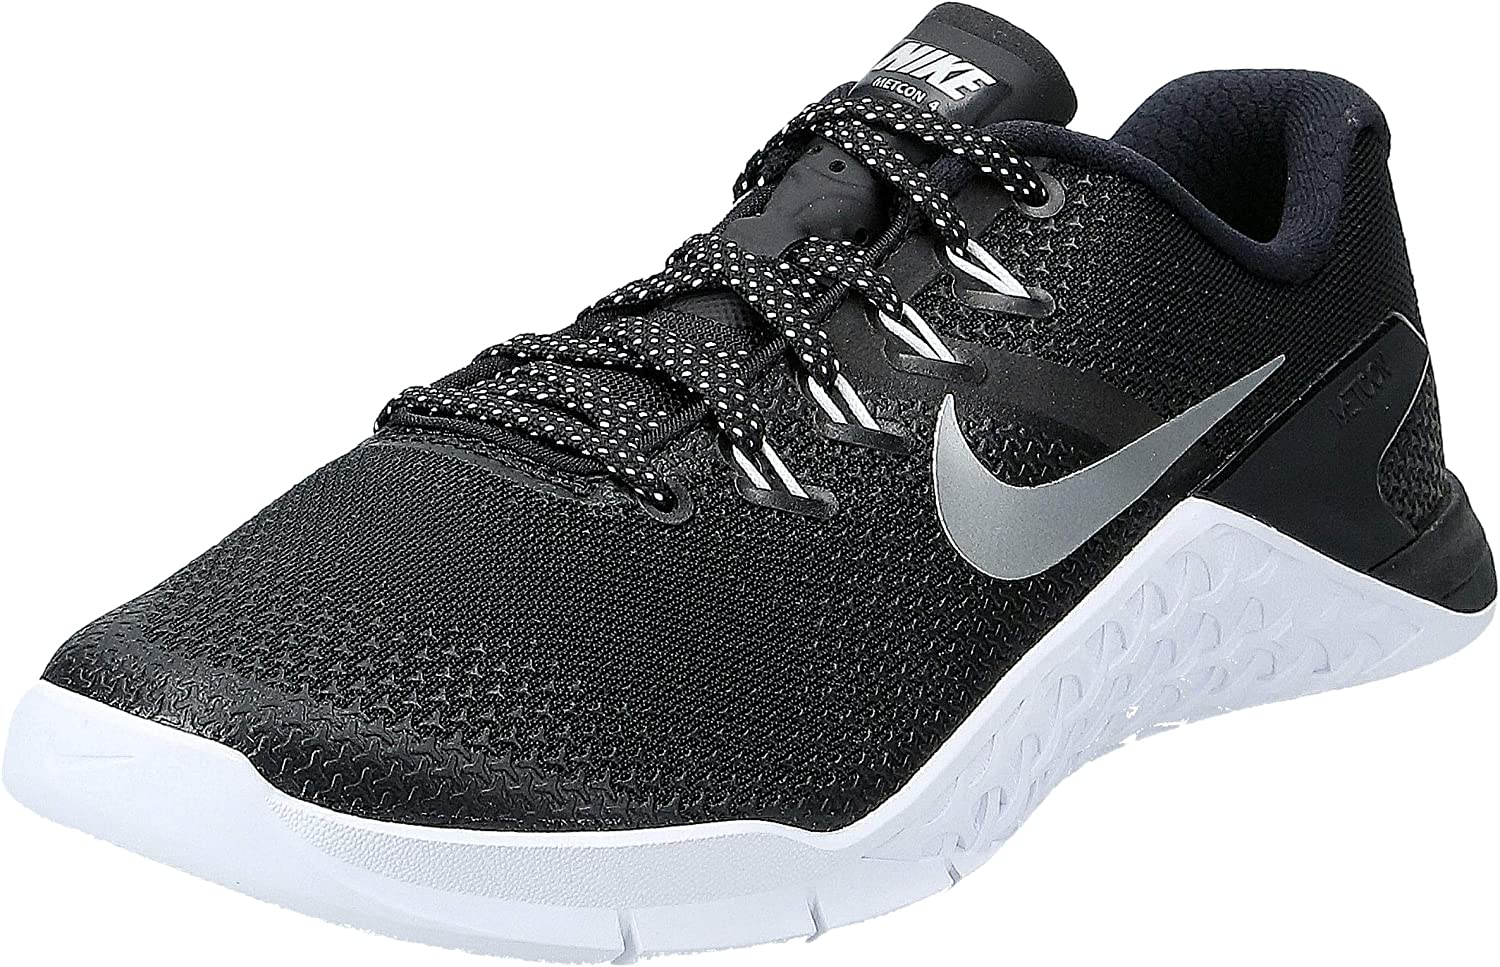 Agacharse Adjuntar a Animado  Amazon.com | Nike Women's Fitness Shoes | Road Running